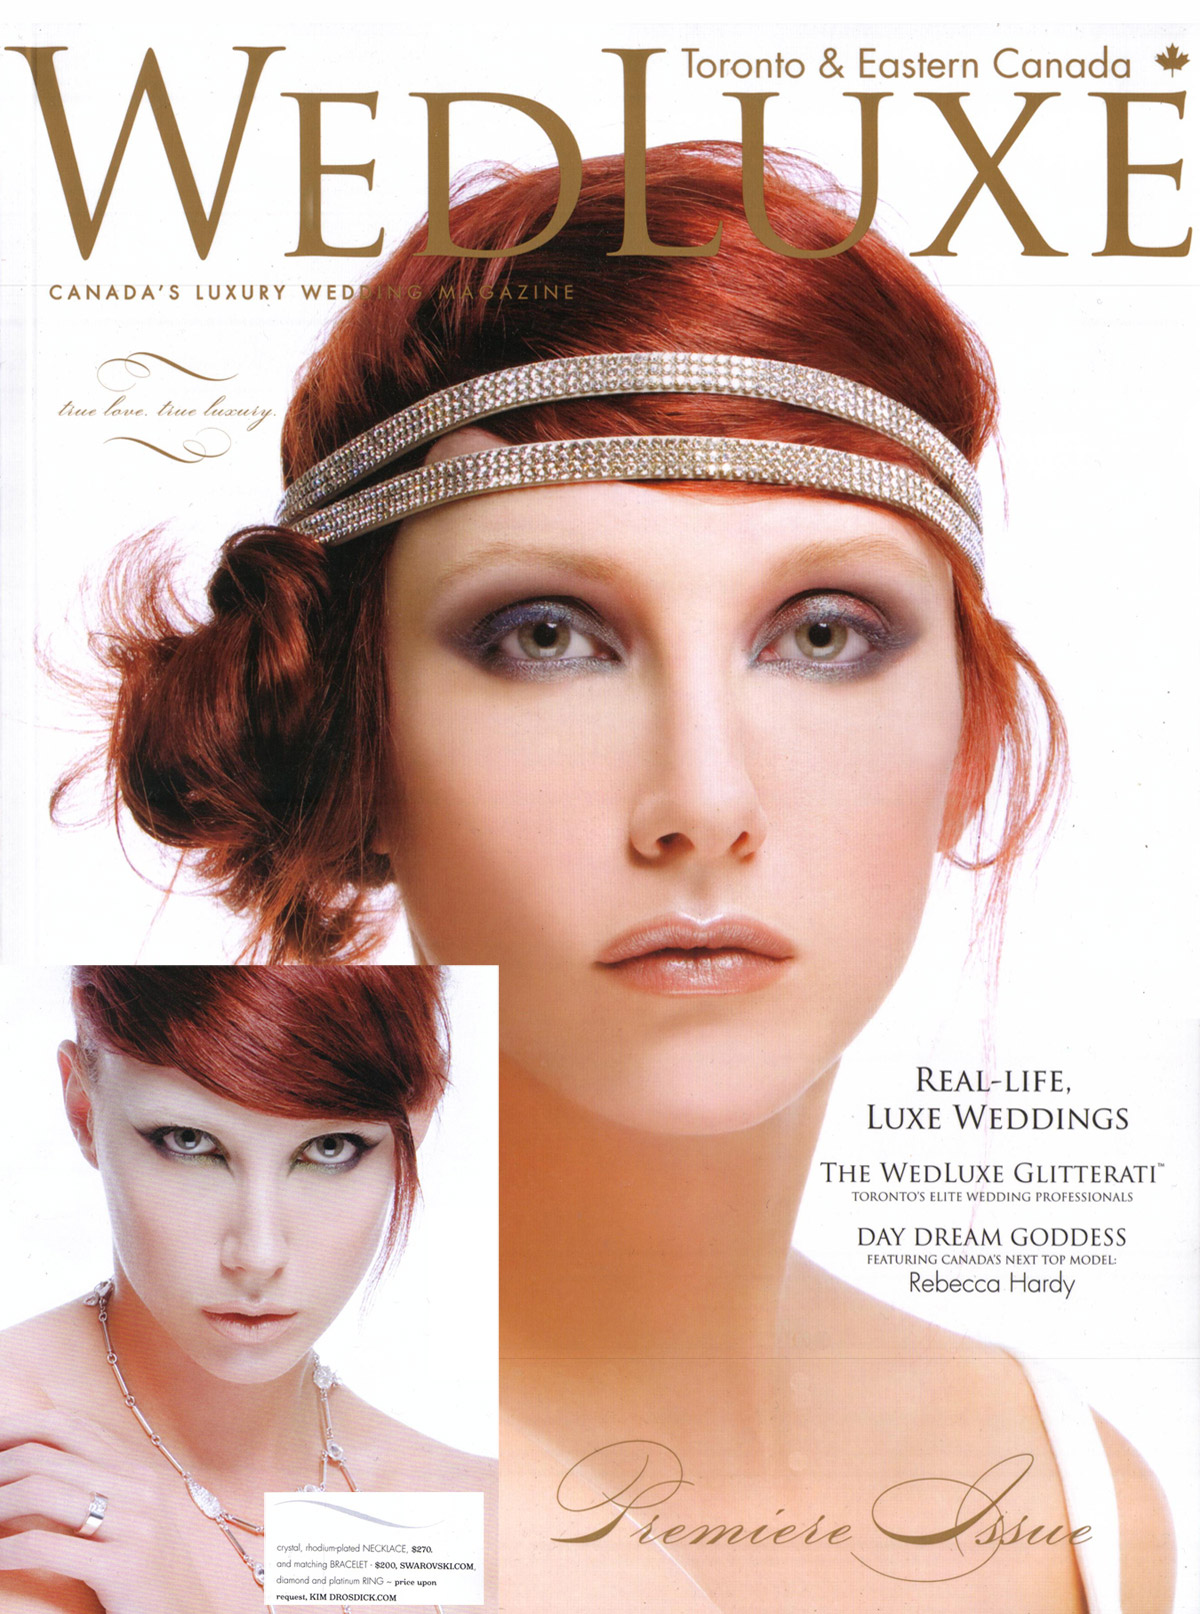 WEDLUXE - Winter/Spring 2008 - Canada's Top Model, Rebecca Hardy sports Kim's ring in WEDLUXE's premiere issue.